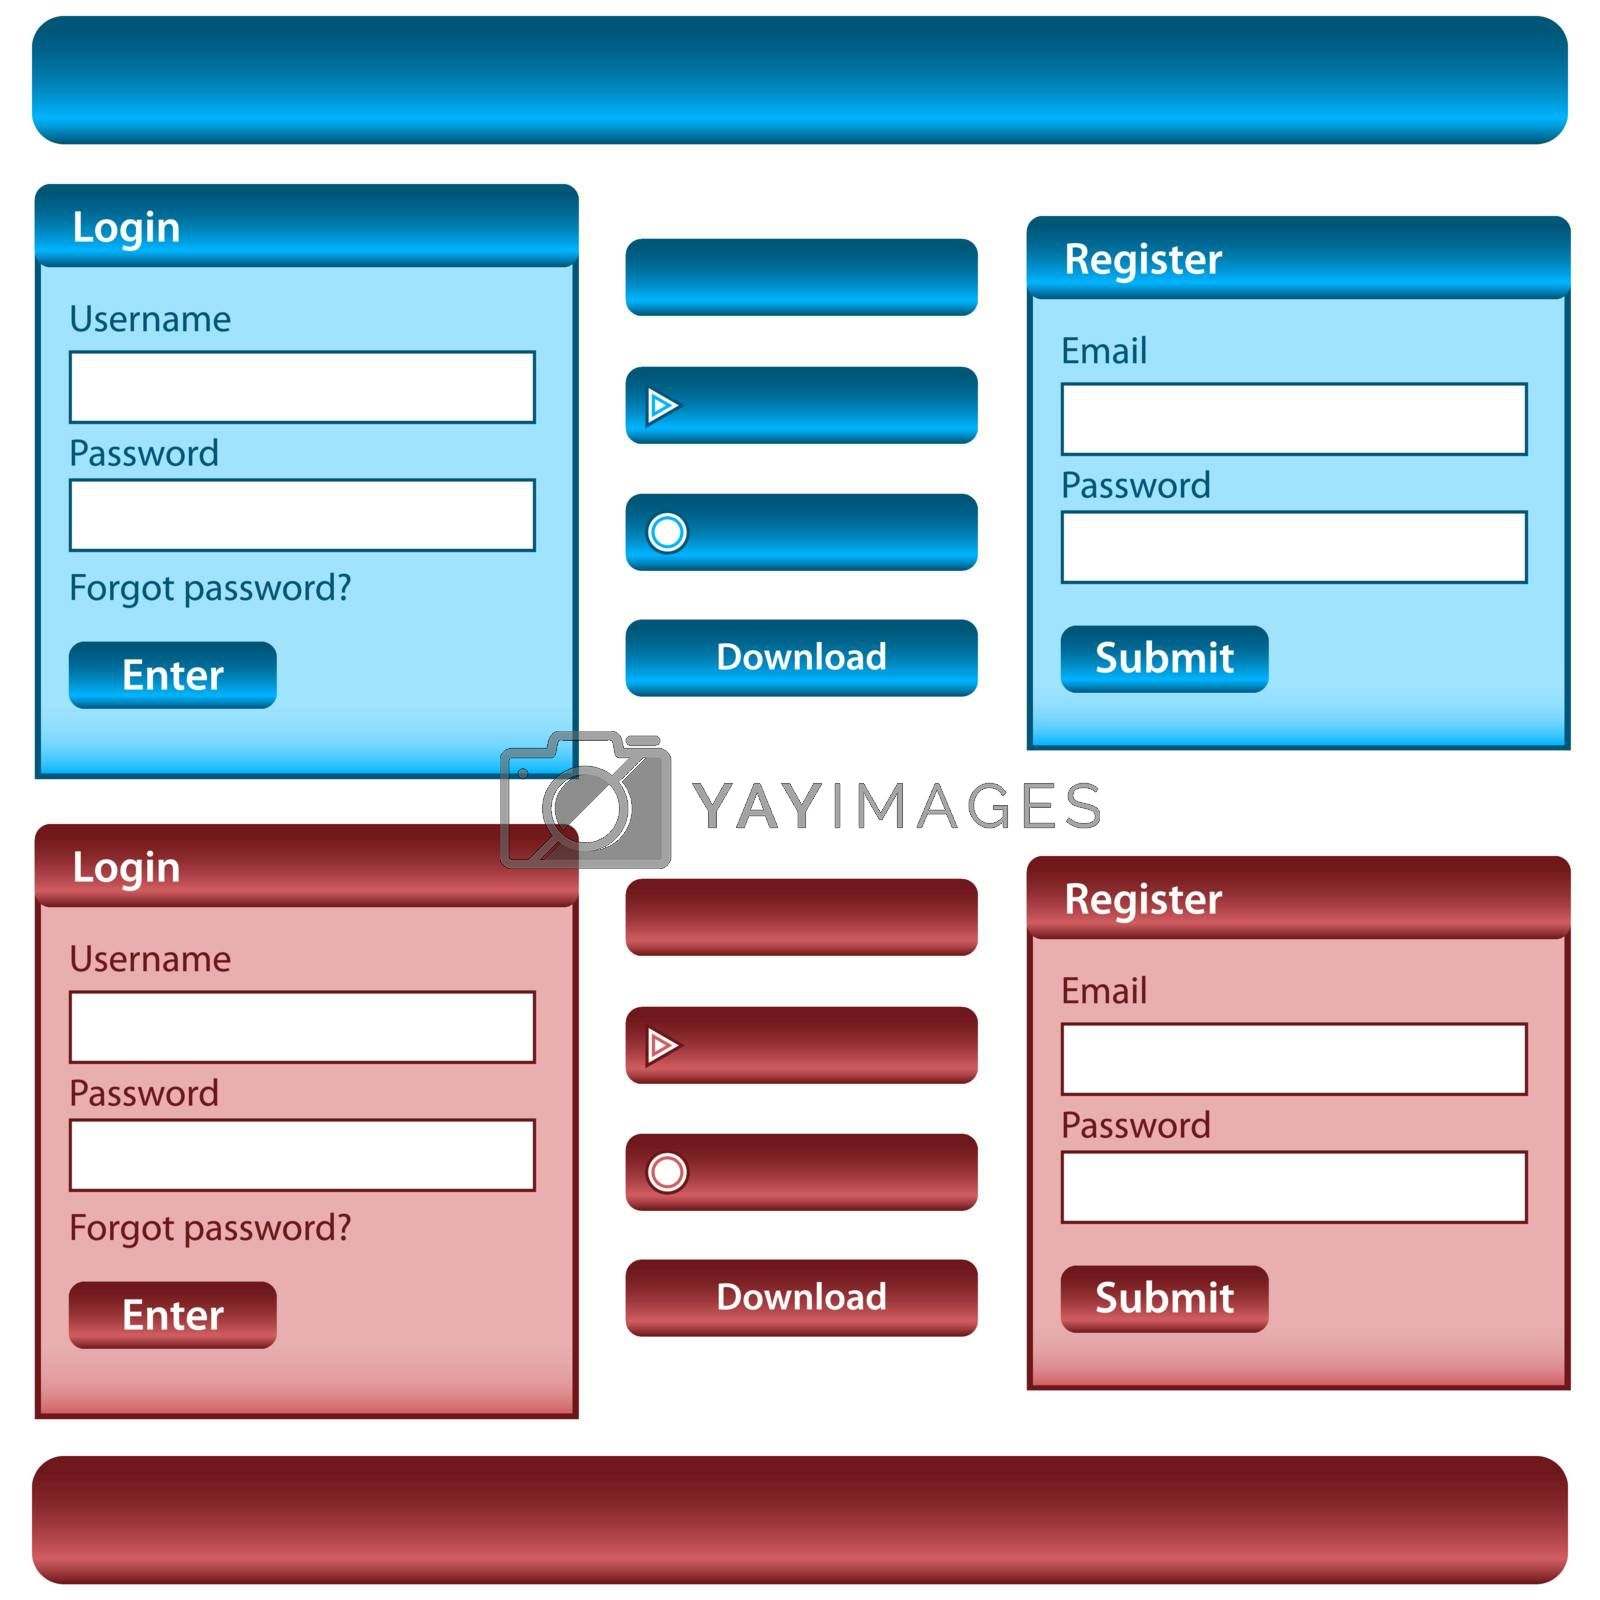 Web design template inc elements with login and register modules, buttons and menu bars in blue and red. Isolated on white.